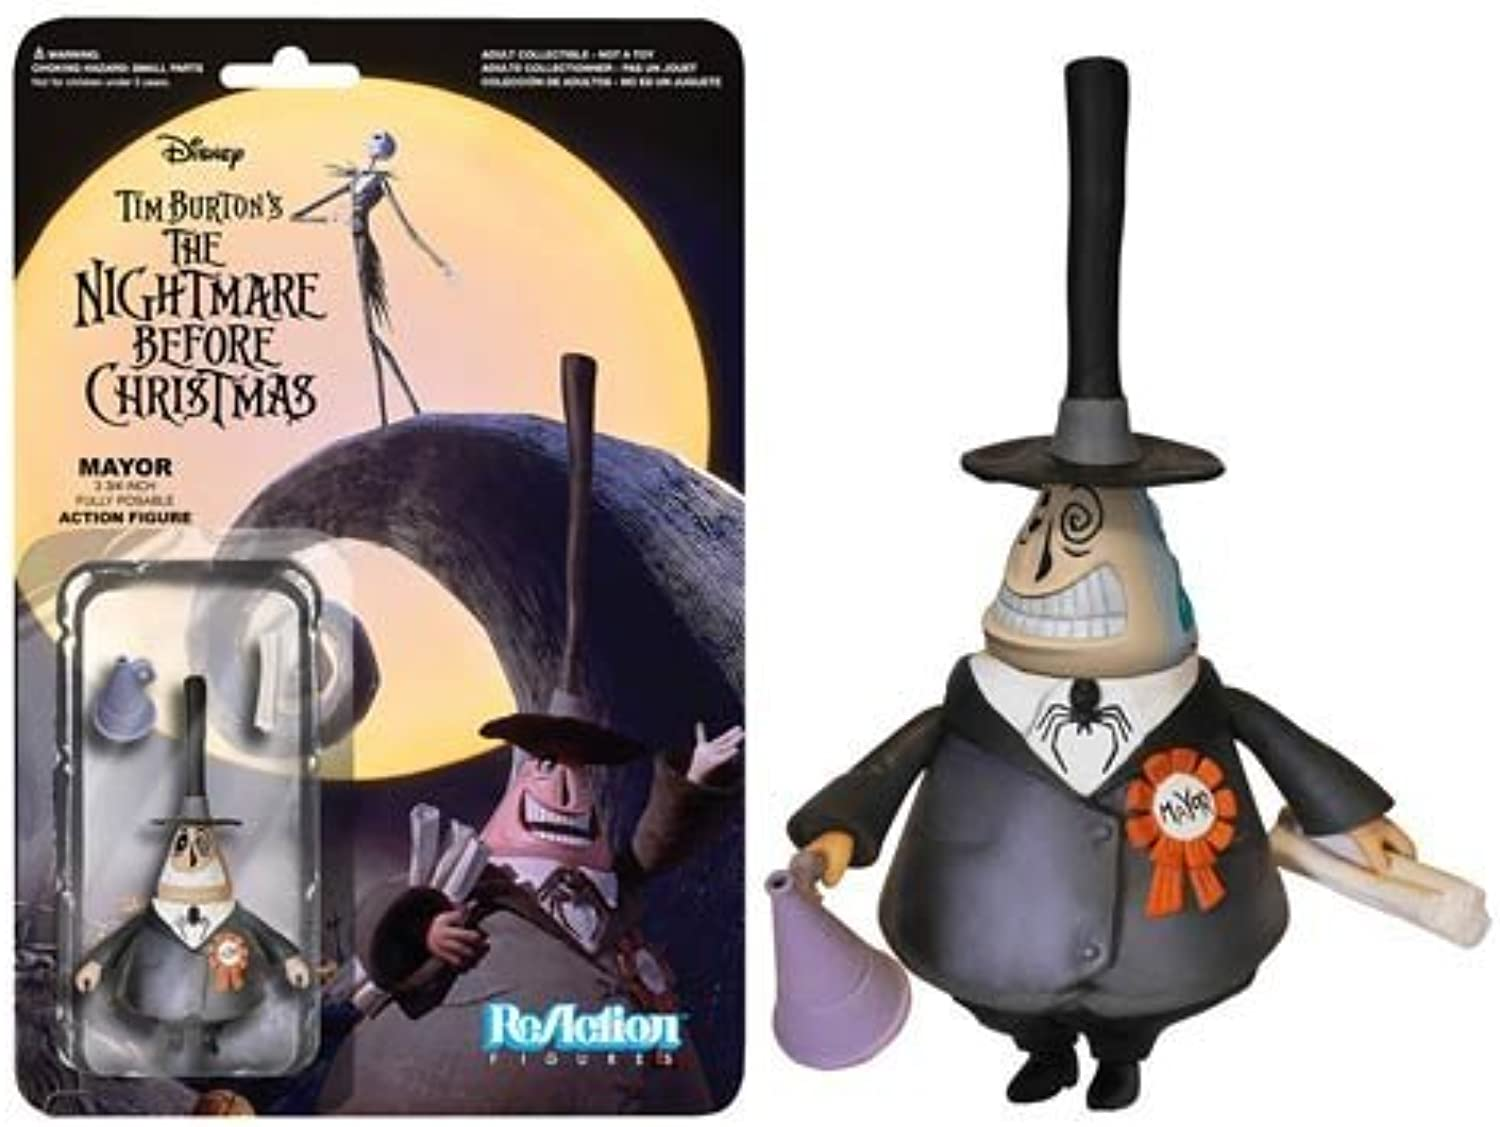 The Nightmare Before Christmas Mayor ReAction 3 3 4-Inch Retro Action Figure by Nightmare Before Christmas